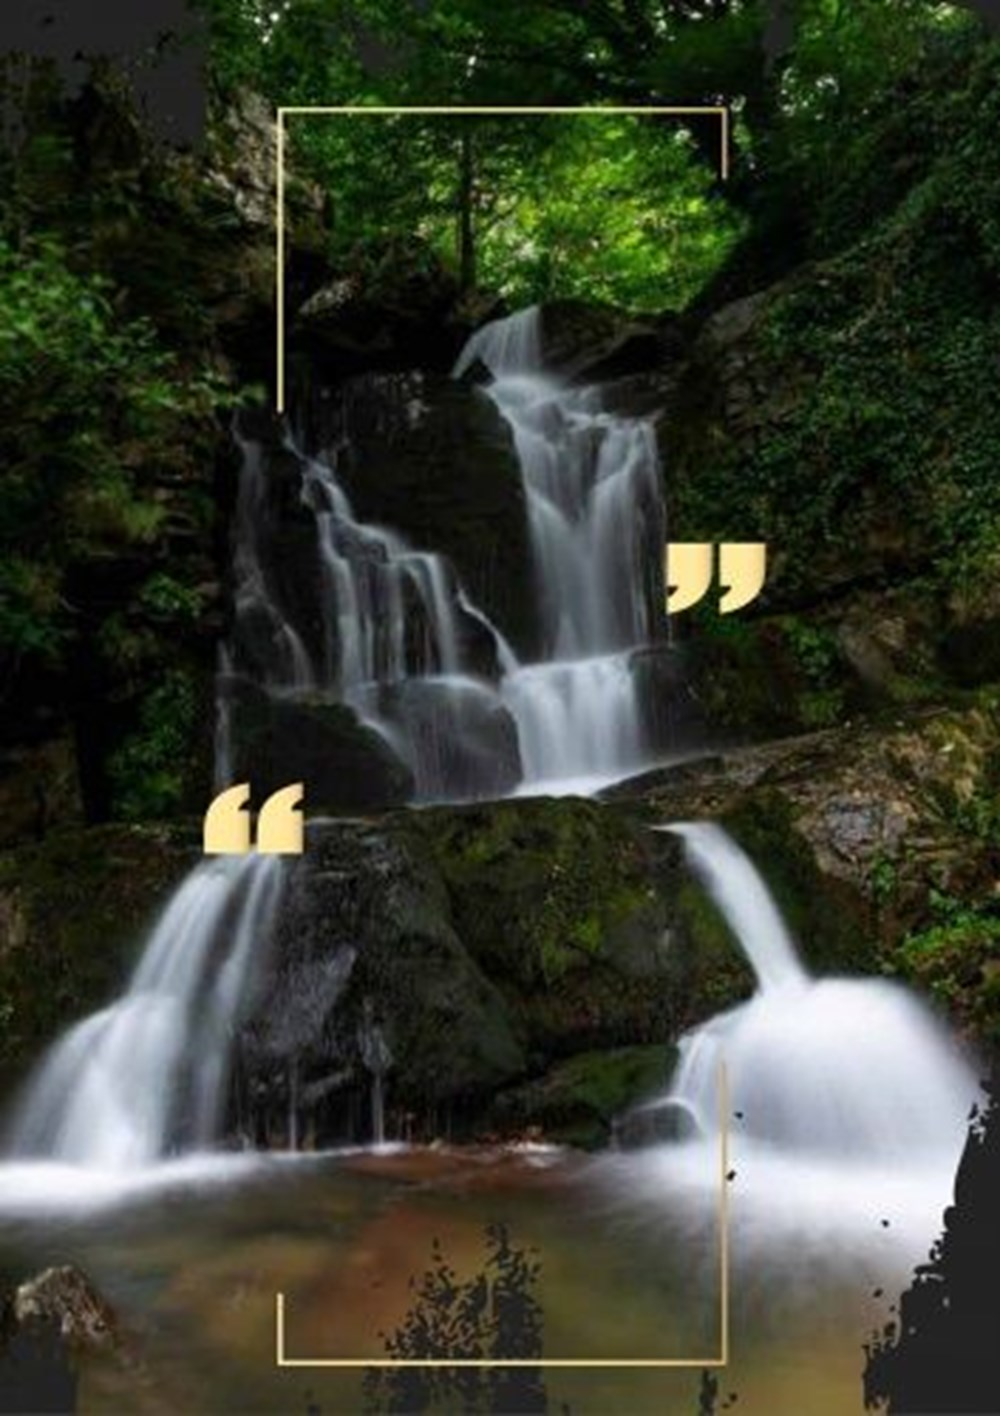 Waterfalls are being brought into tourism in Ordu - 7